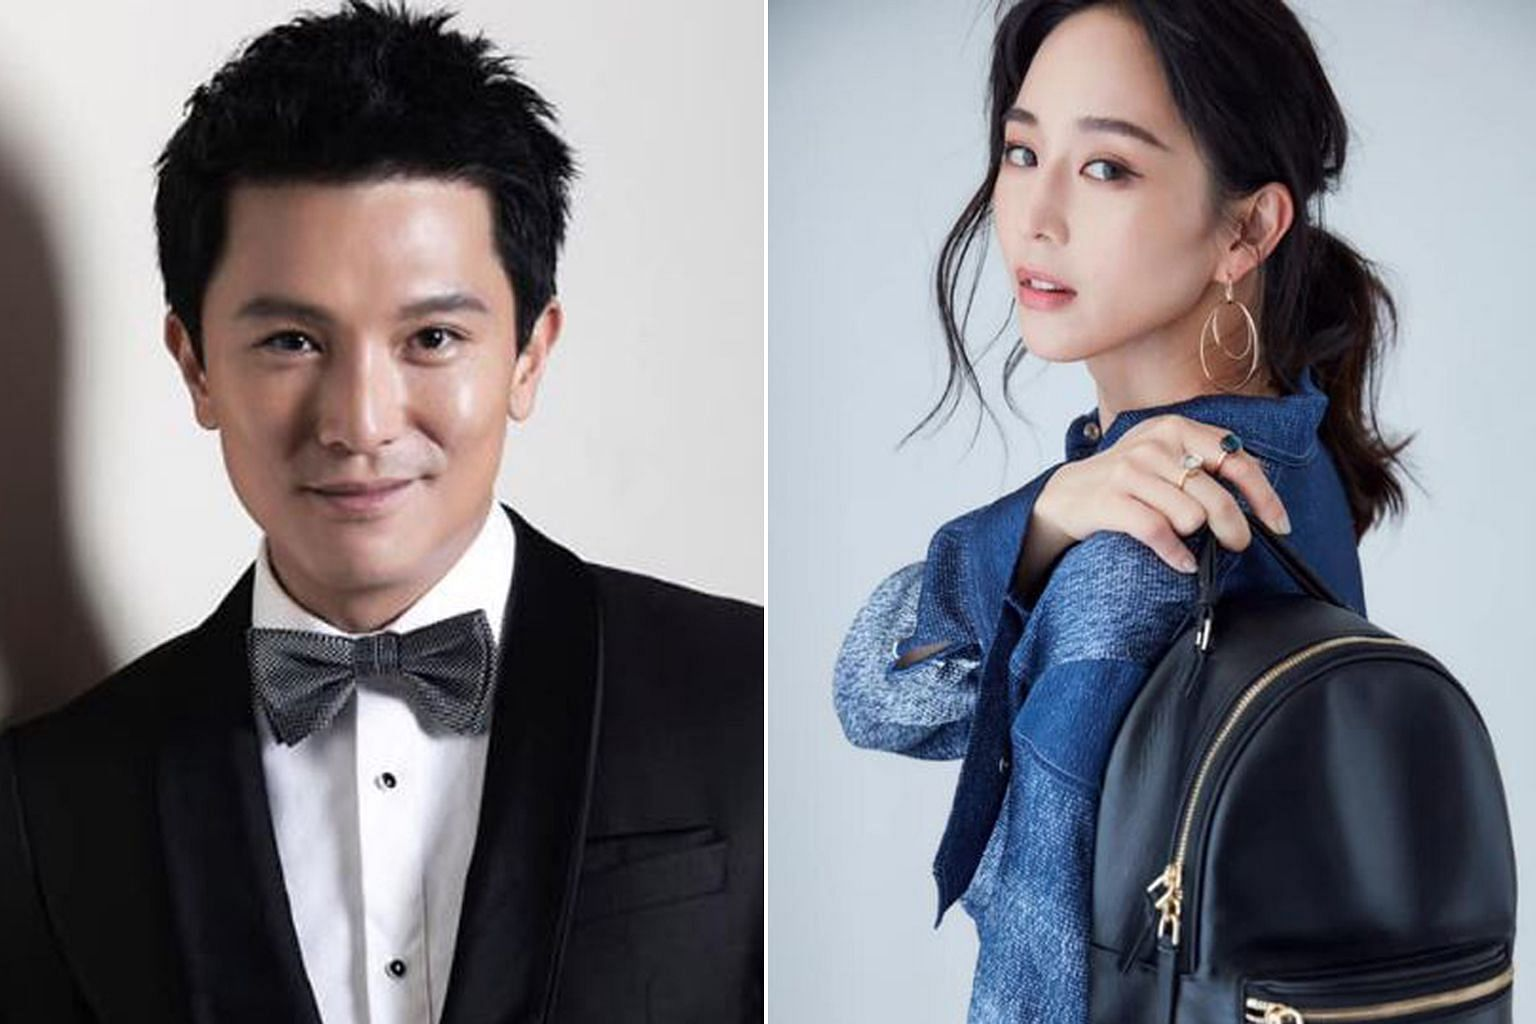 Roy Chiu and Janine Chang were seen leaving his house together and getting into the same car.